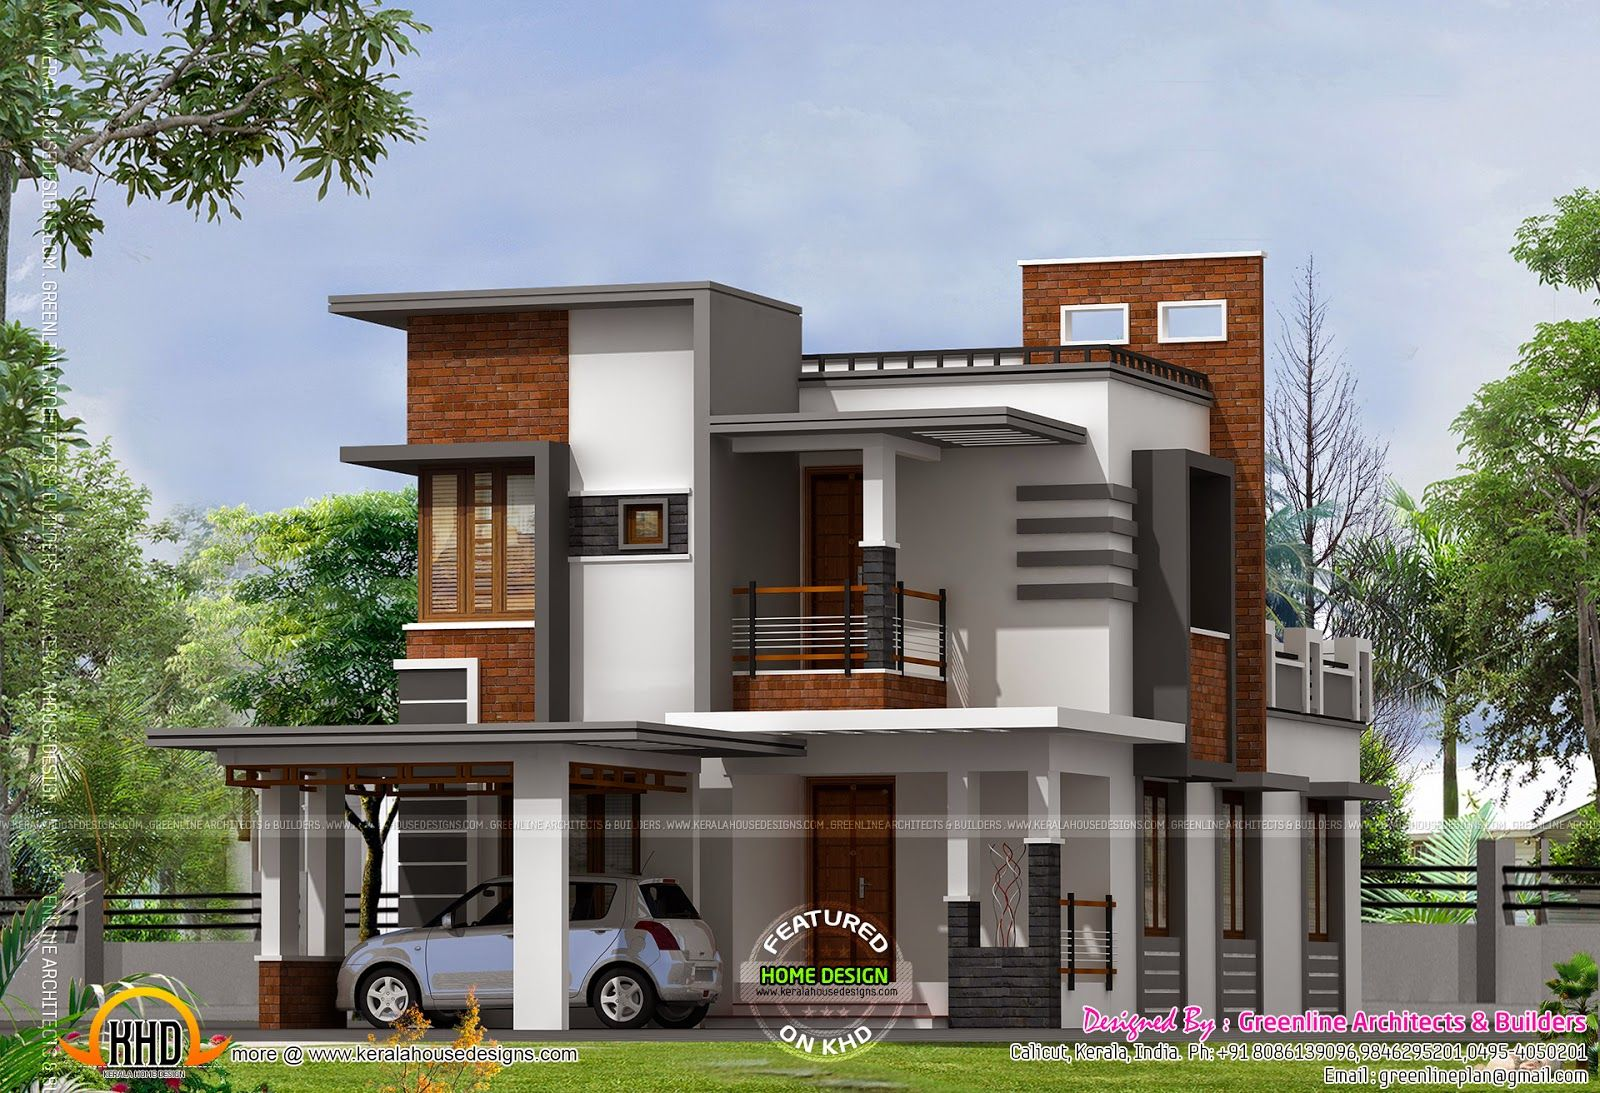 Low cost contemporary house in 2020 Classic house design